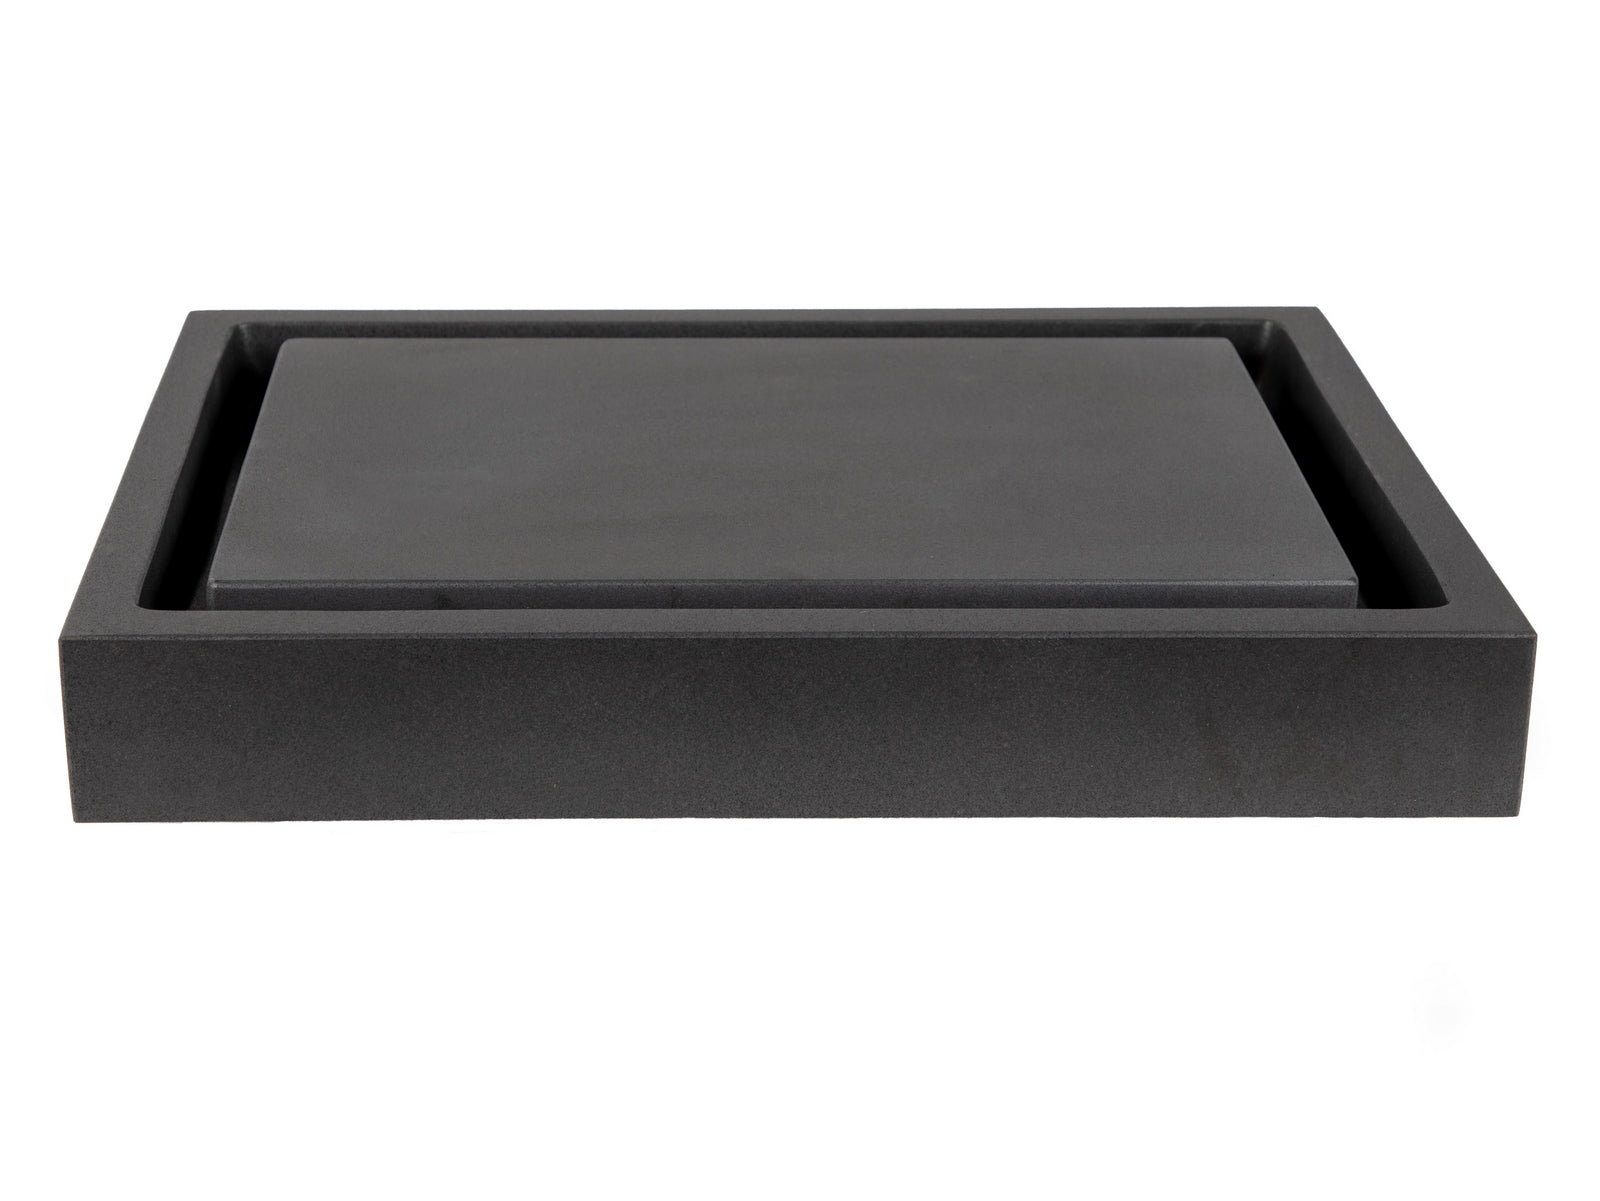 Rectangular Infinity Pool Sink - Honed Lava Stone